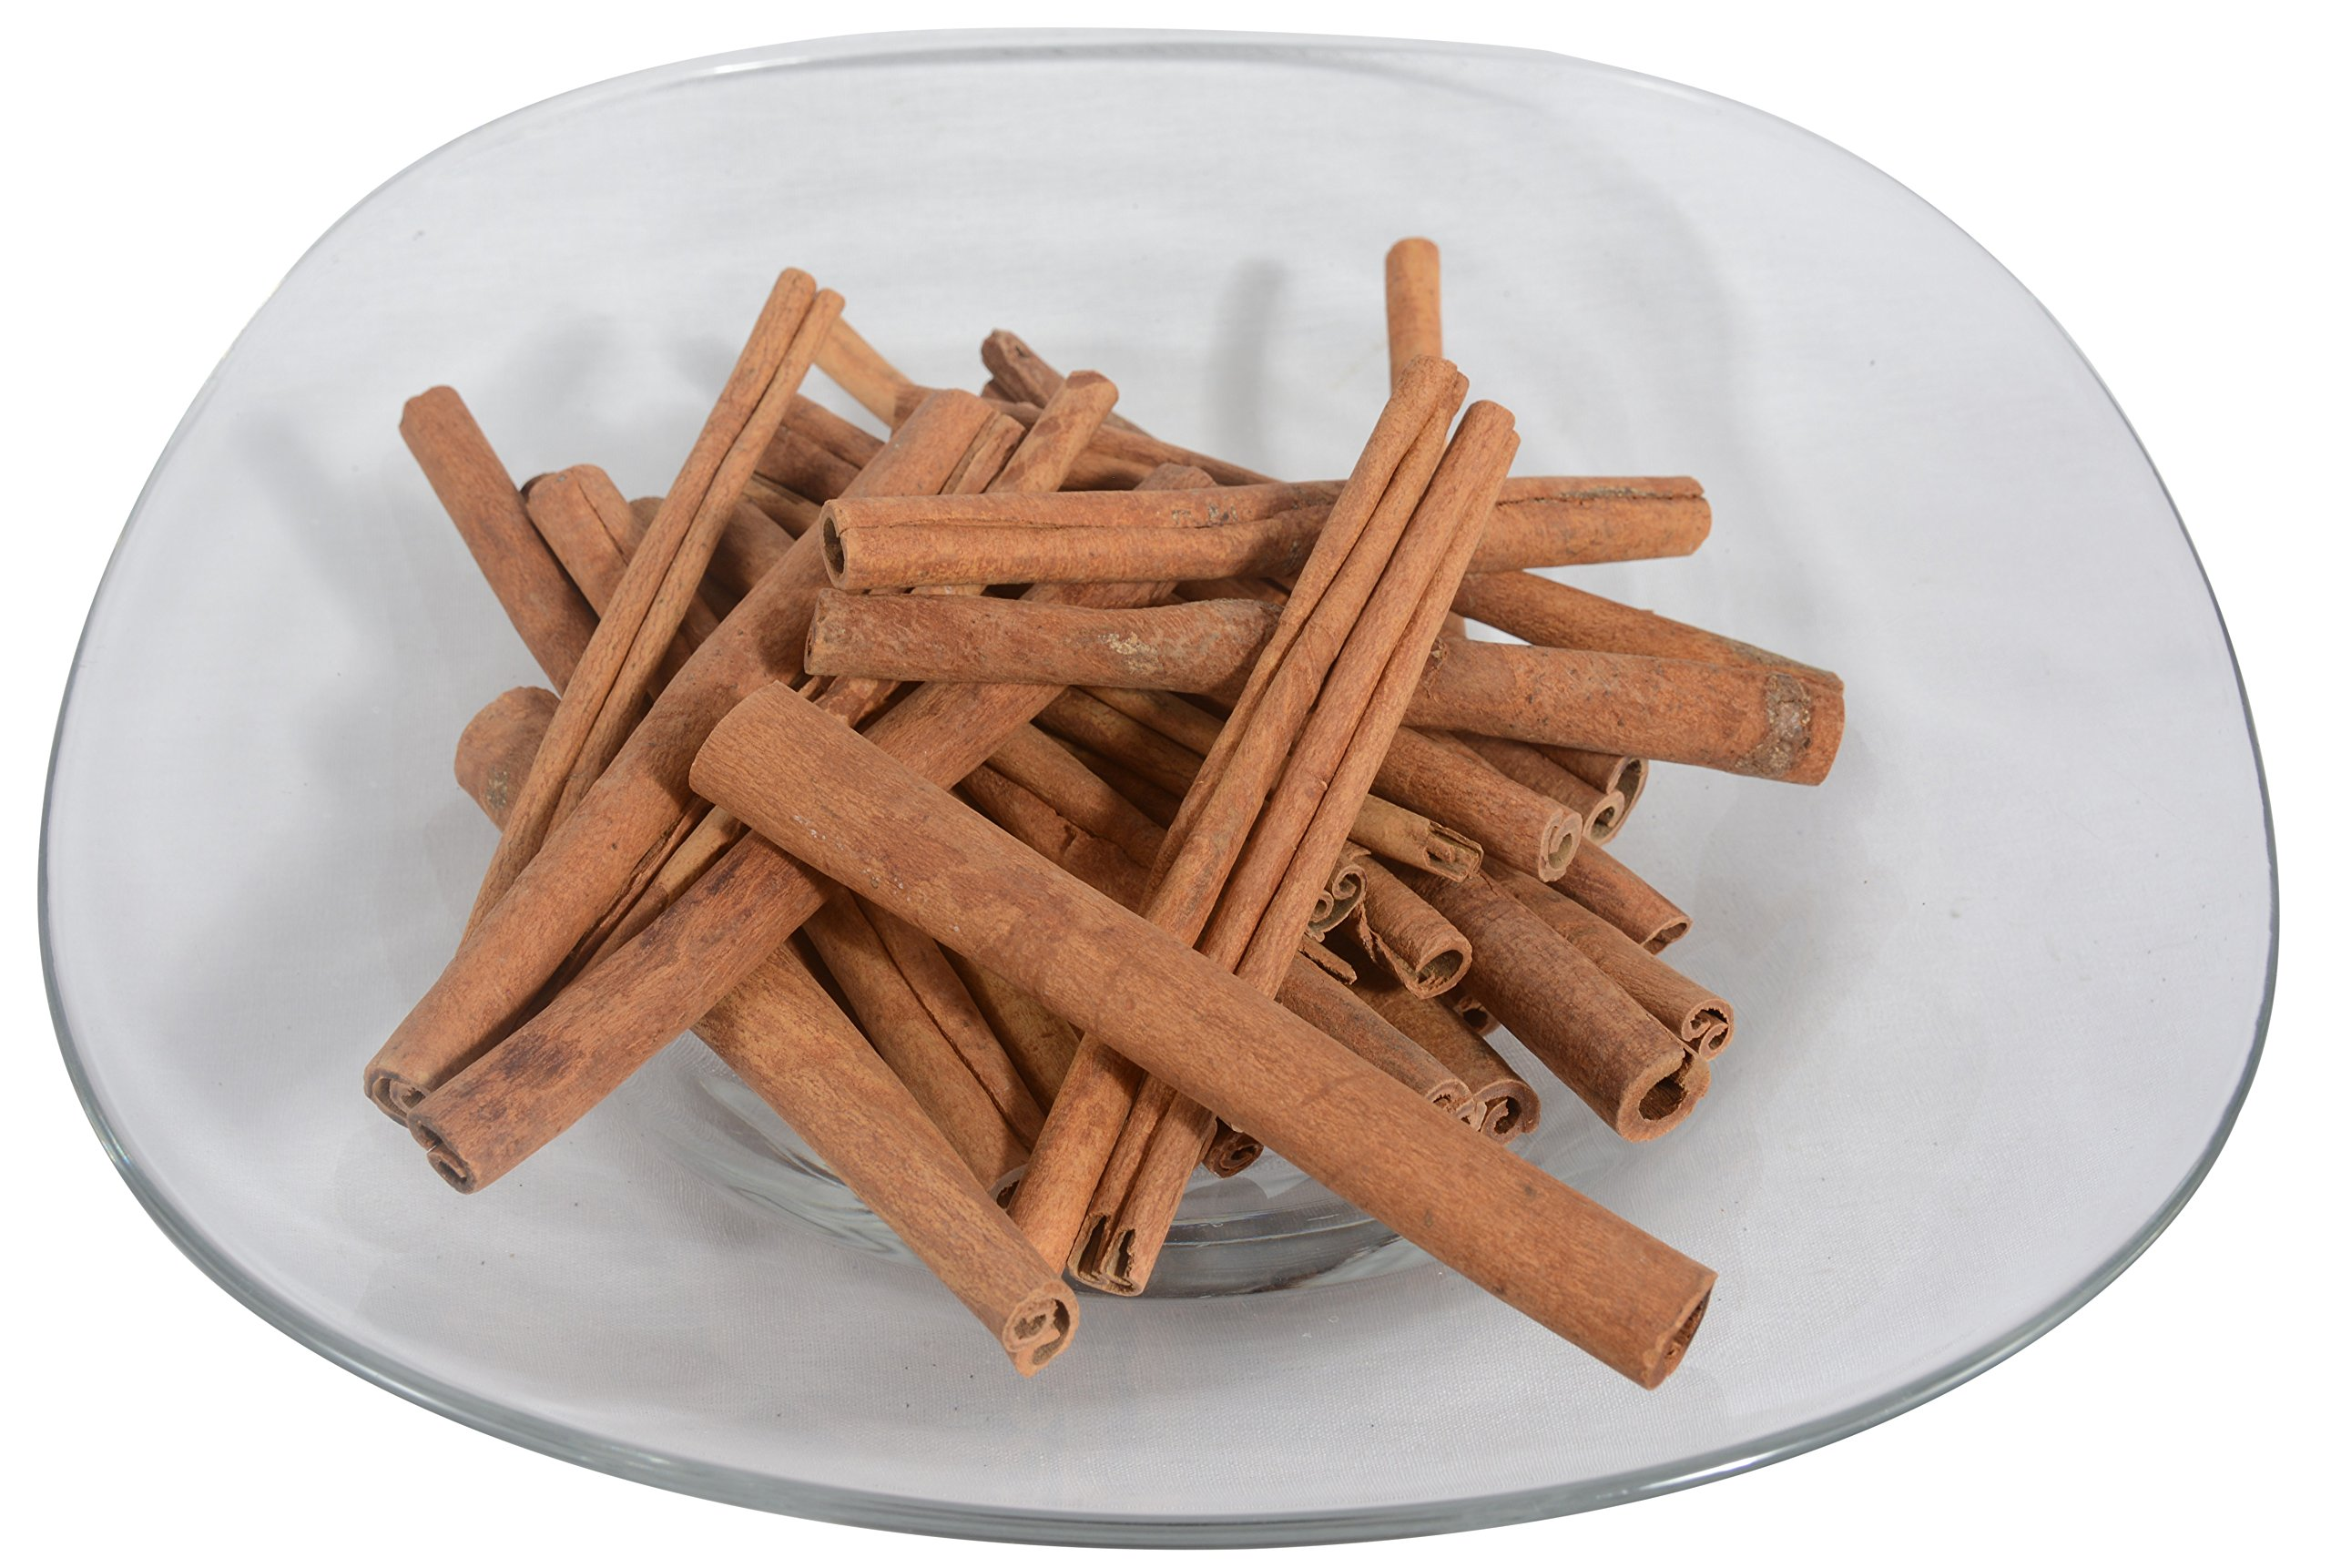 Cinnamon Sticks - 6 Inch Long Cinnamon Sticks Fragrant Bowl Filler, Decorative Use, 1 Pound Package by Darice